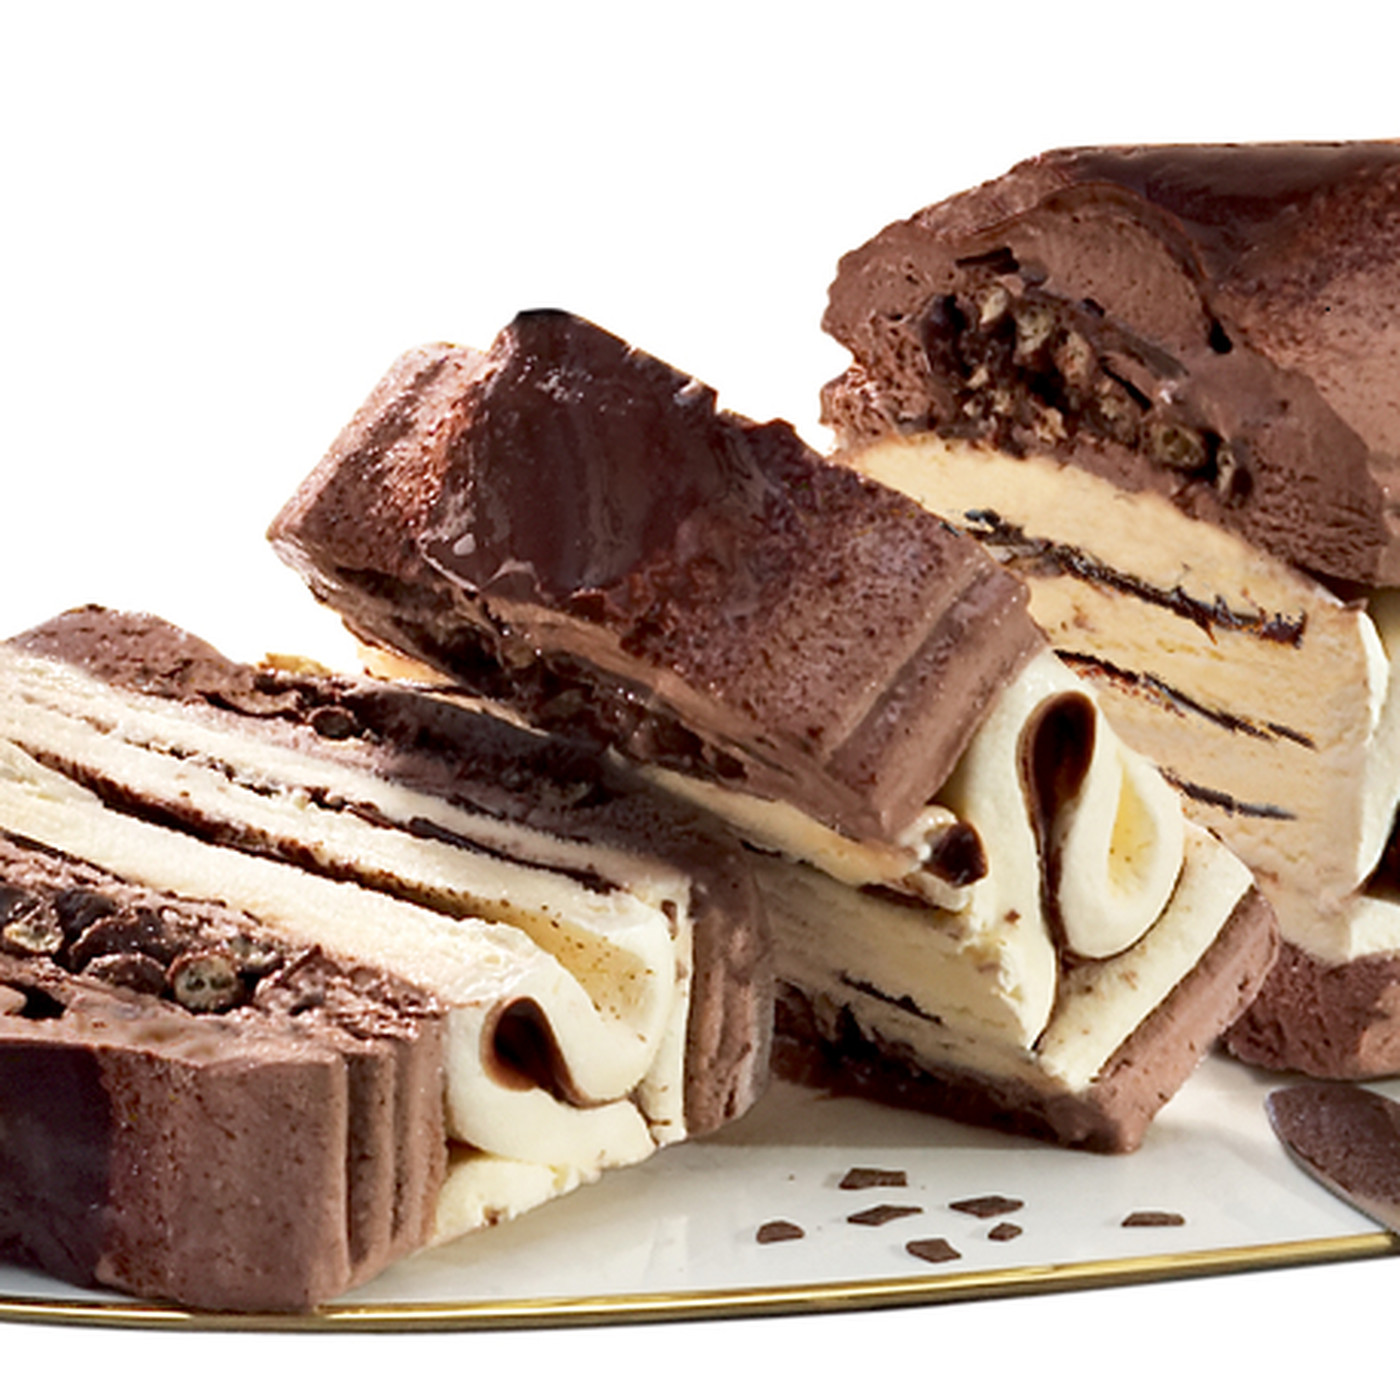 Watch How Viennetta The Fanciest Ice Cream Cake Of The 90s Is Made